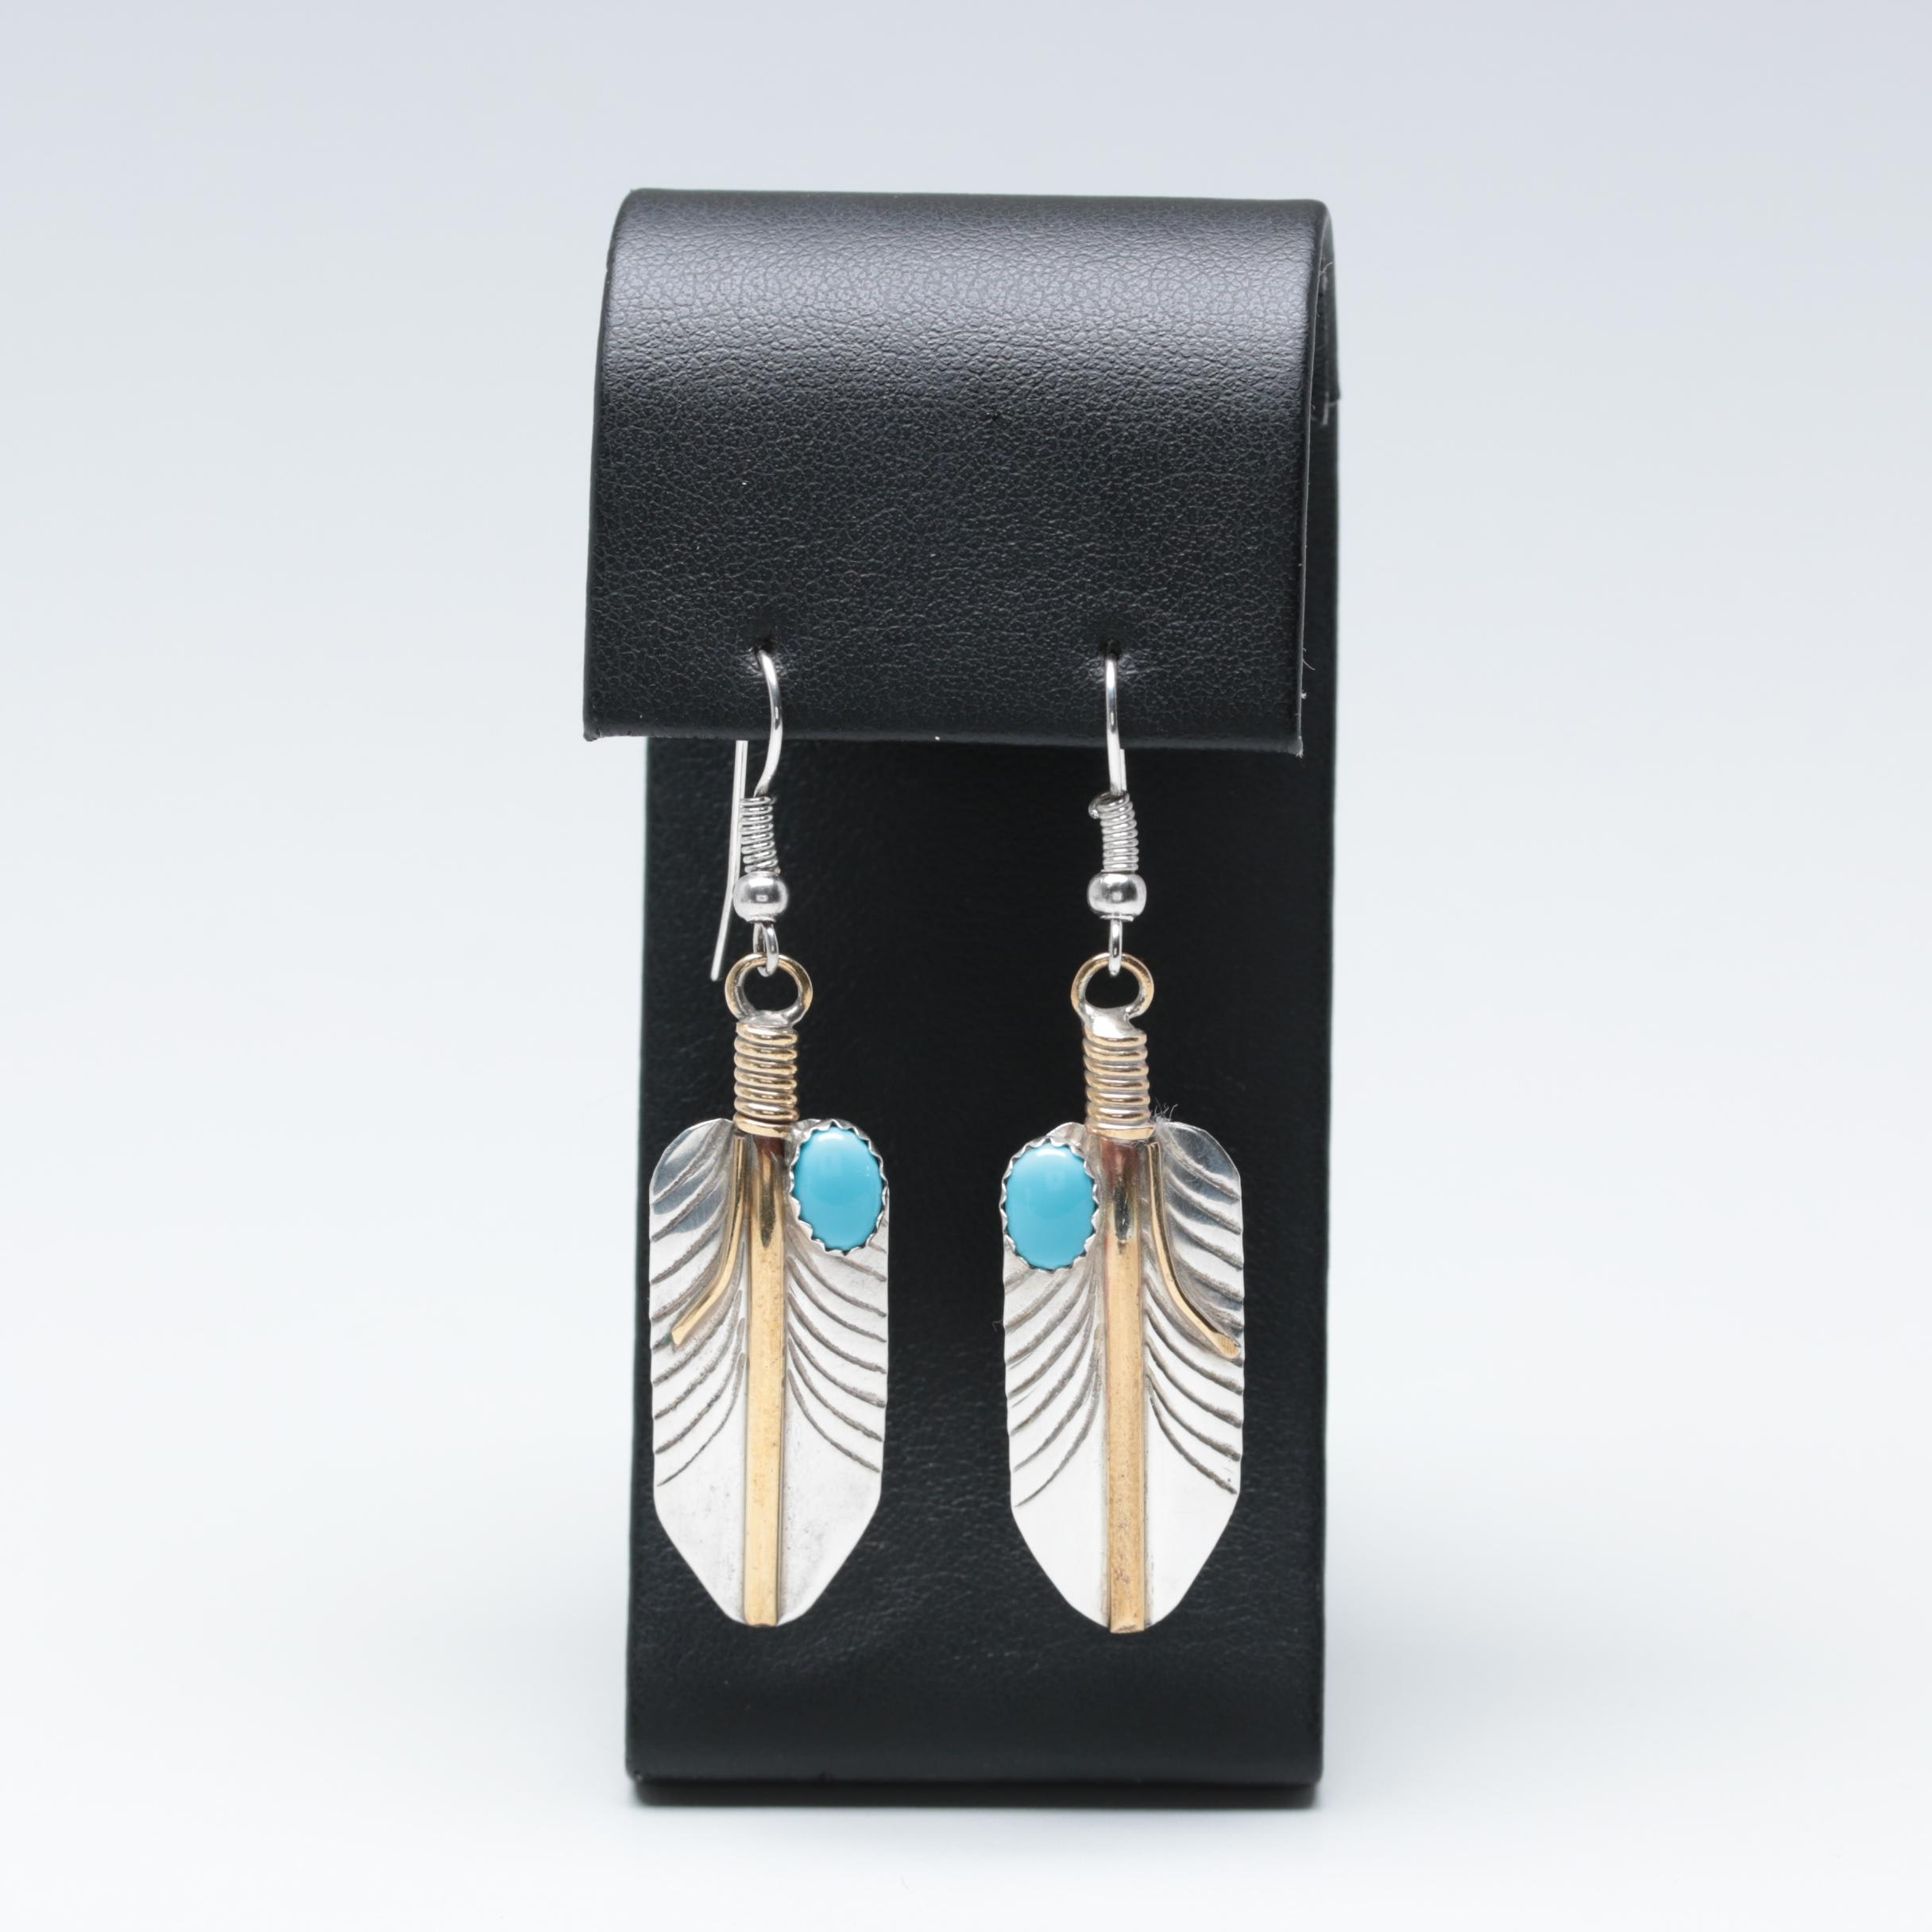 Verdy Jake Navajo Diné Sterling Silver Imitation Turquoise Earrings